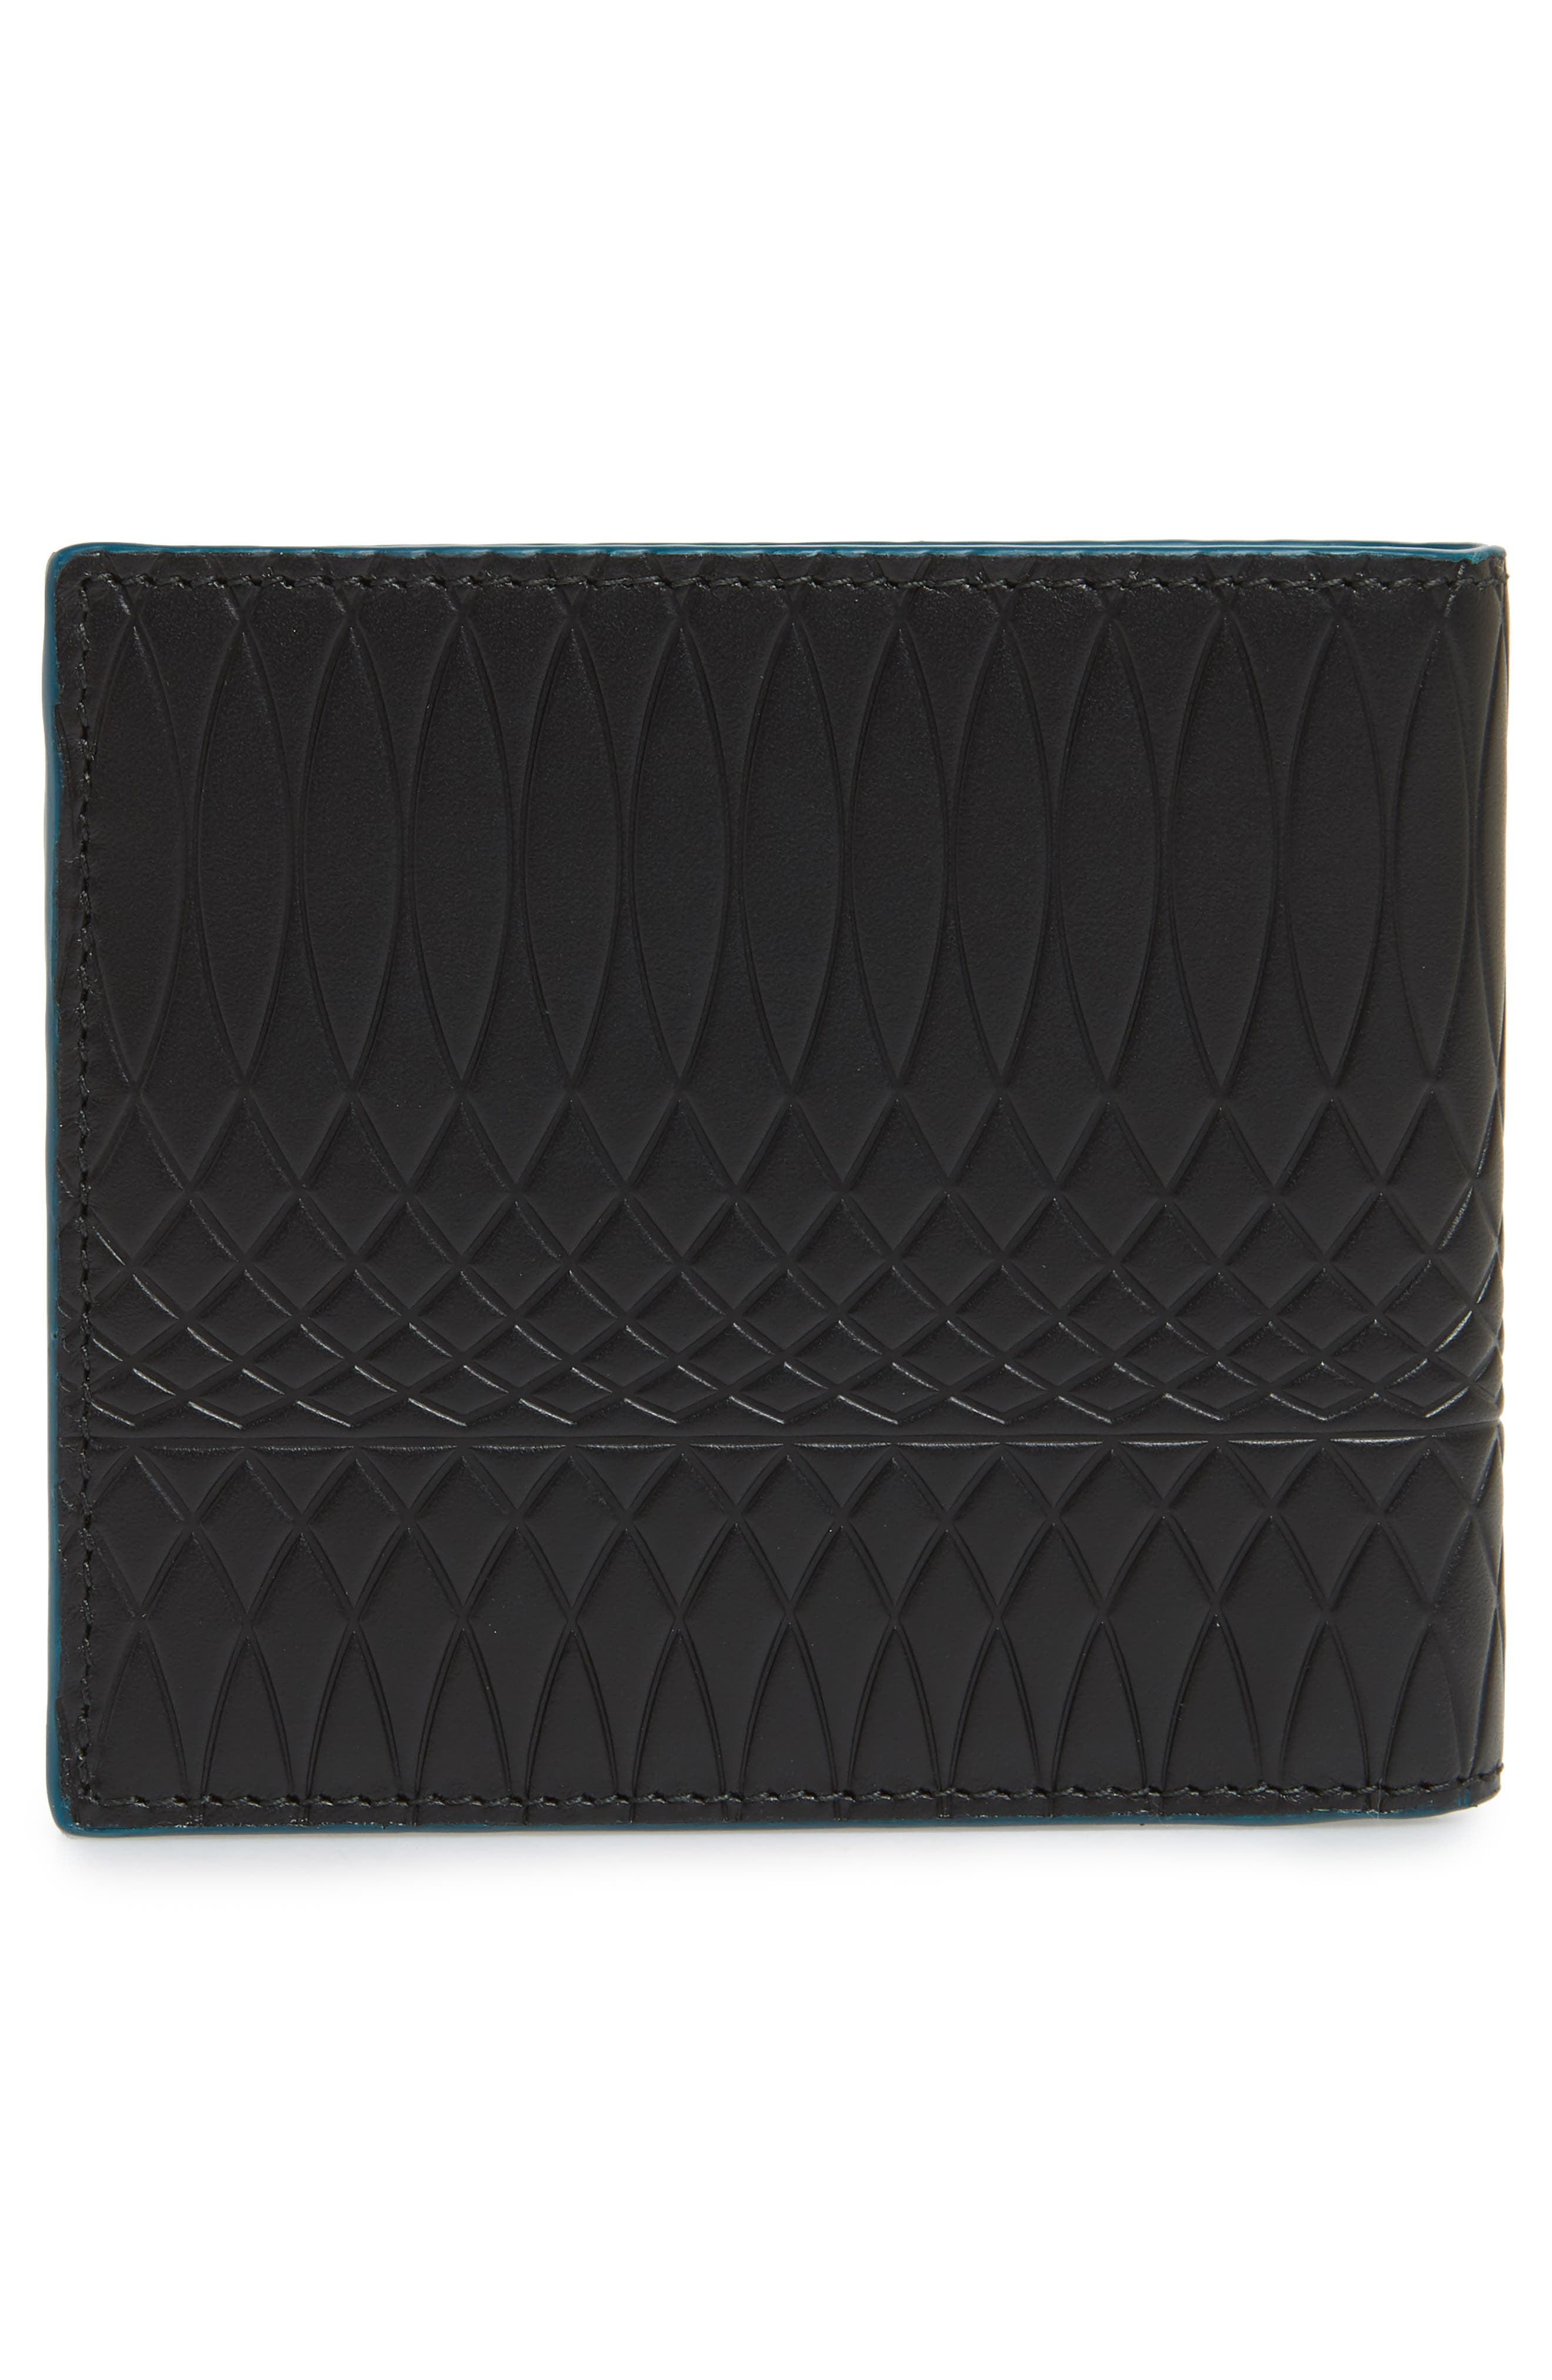 Embossed Leather Billfold Wallet,                             Alternate thumbnail 3, color,                             BLACK